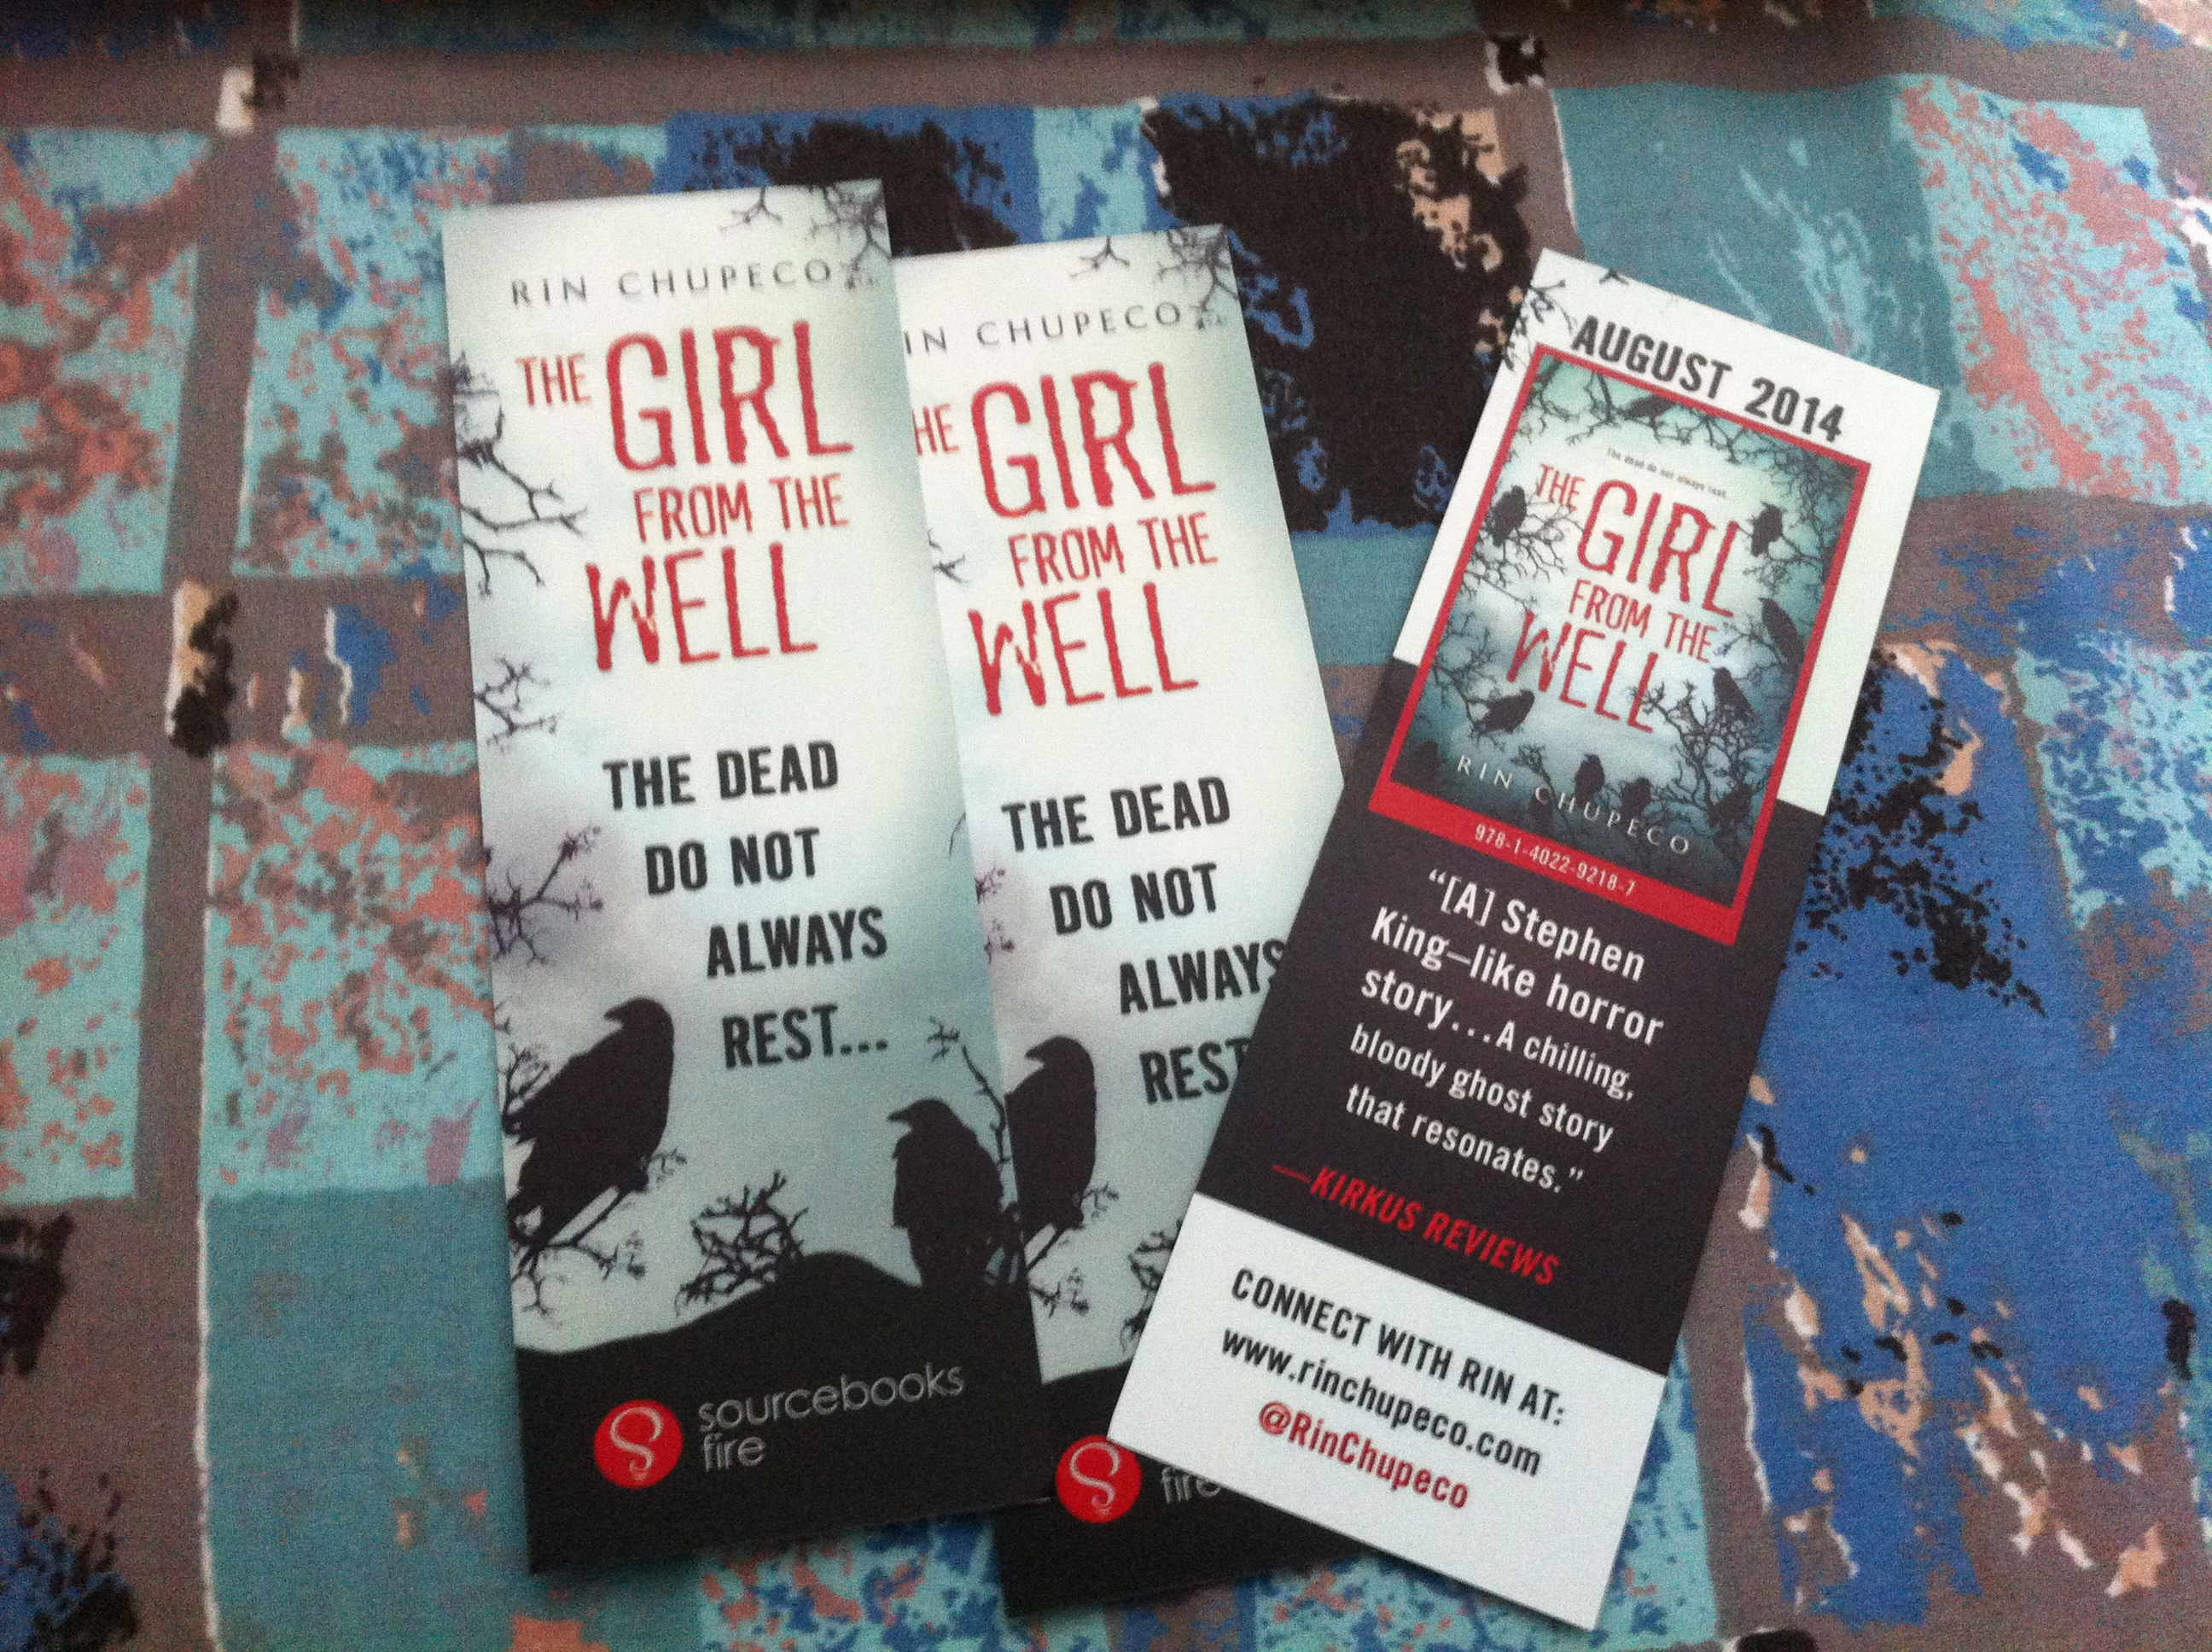 The Girl from the Well Bookmarks, Book Badges, and even more Changes!